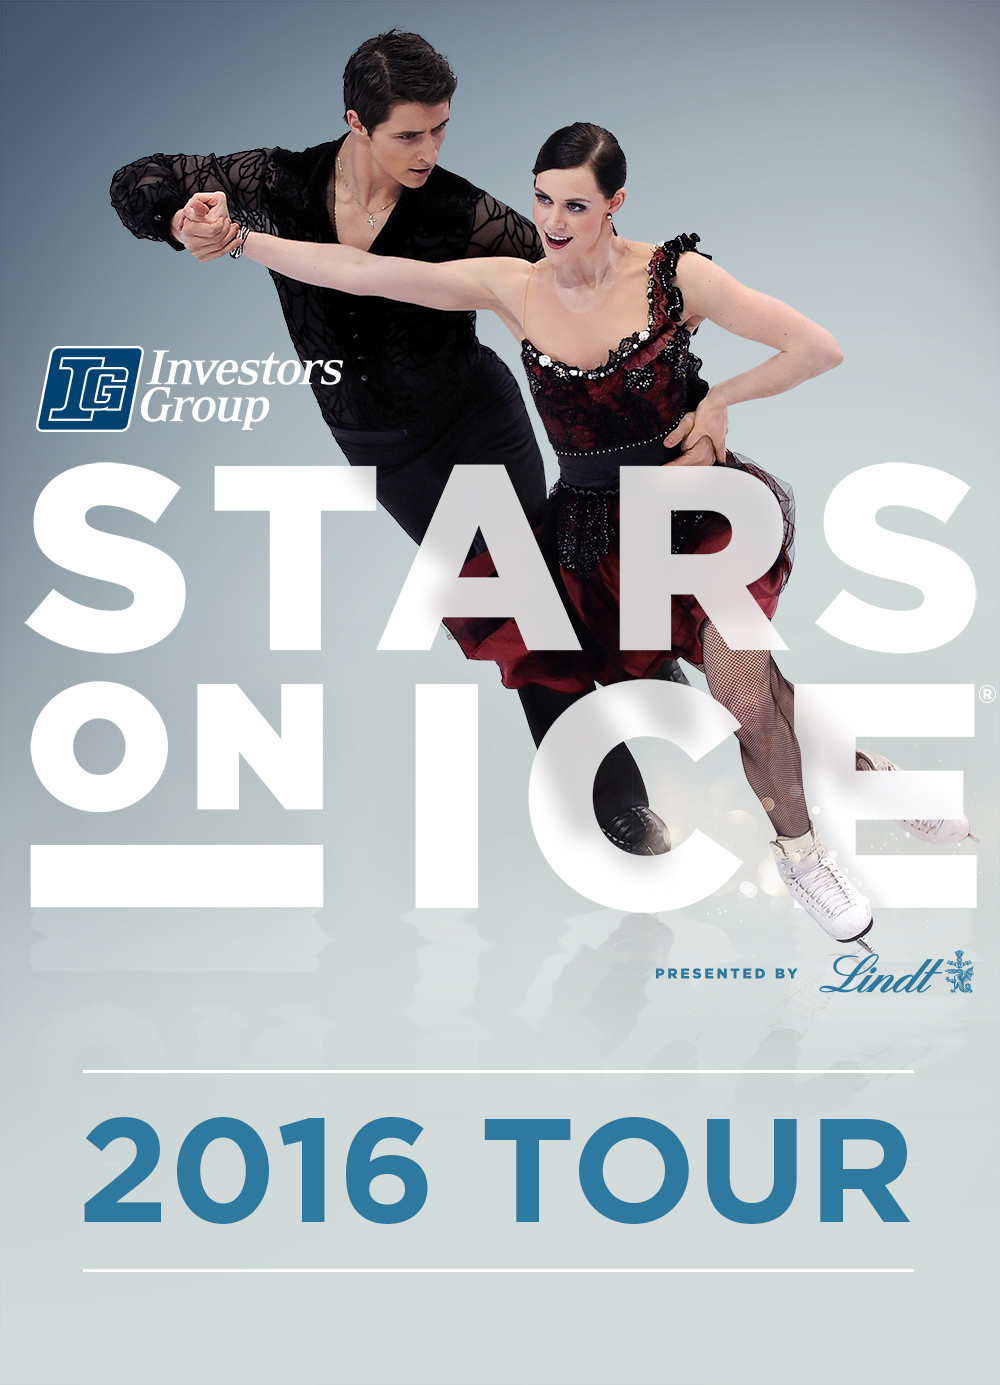 Stars on Ice Vertical Graphic - 2016